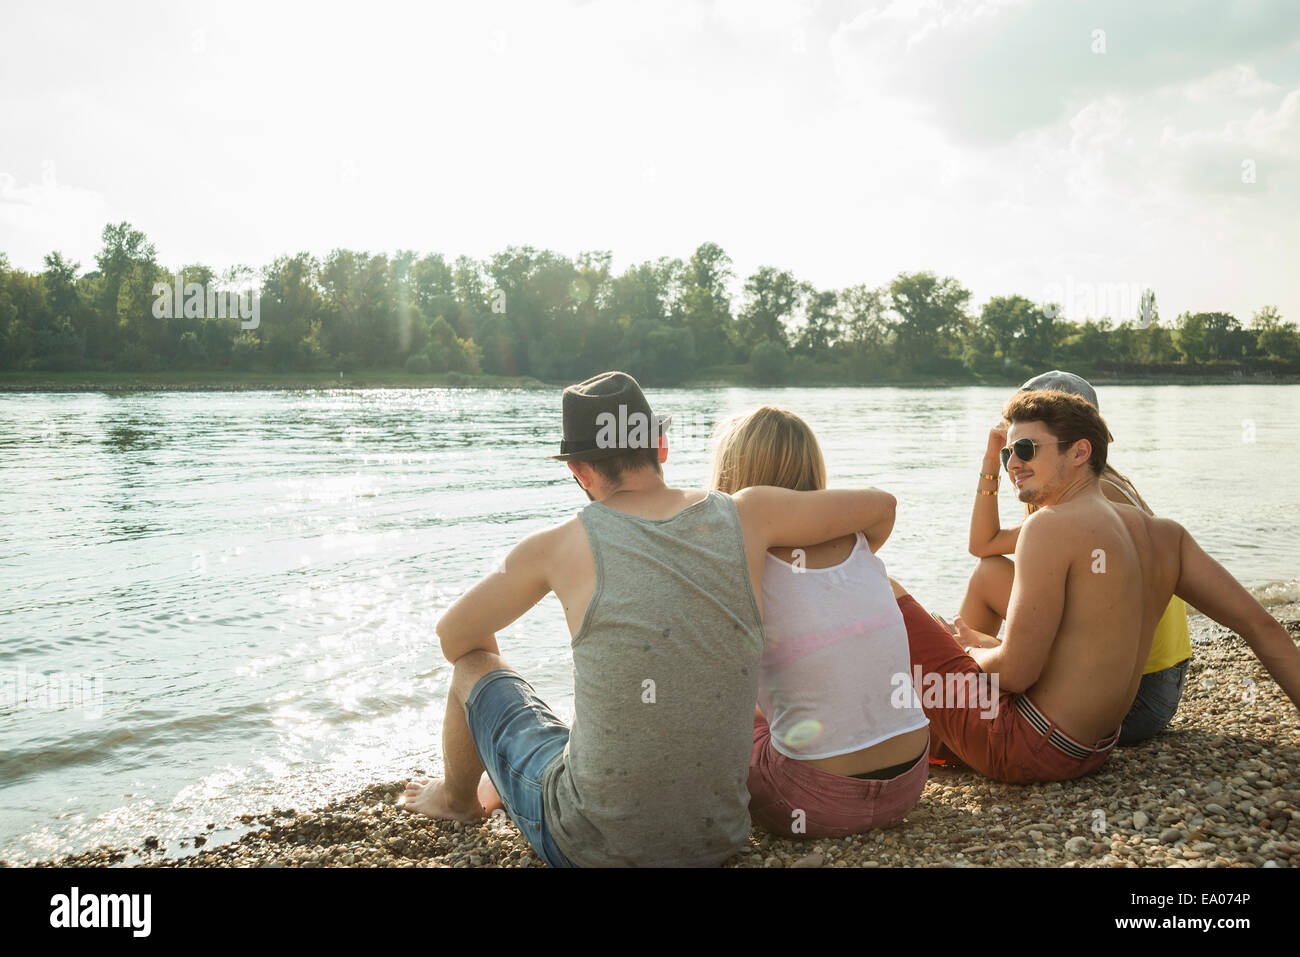 Four young friends sitting on lakeshore - Stock Image